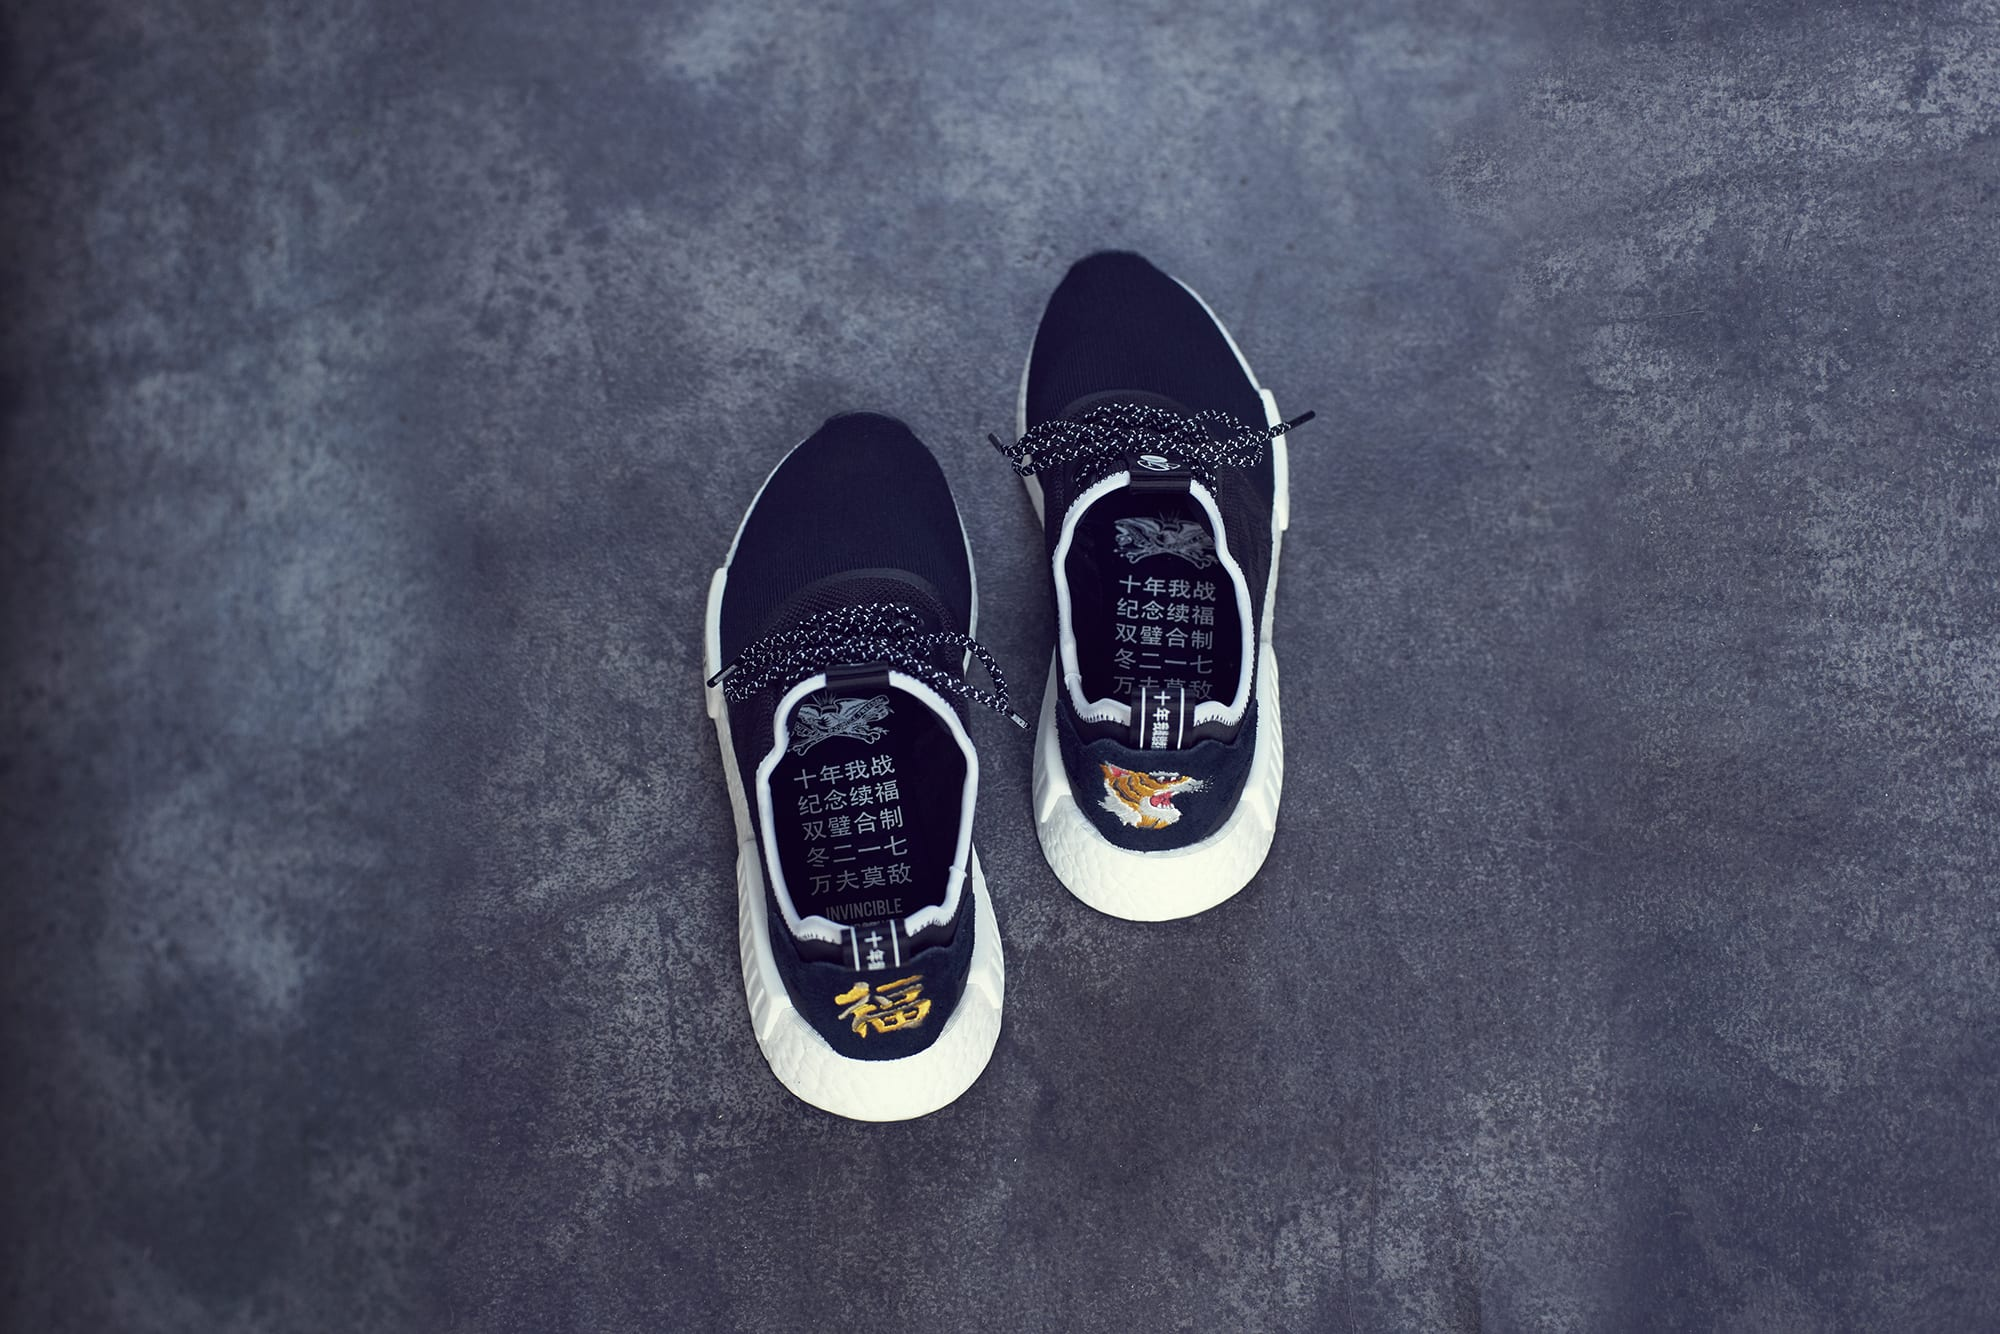 45913a95efe adidas Consortium NMD R1 Invincible X Neighborhood releases Fri 29th ...